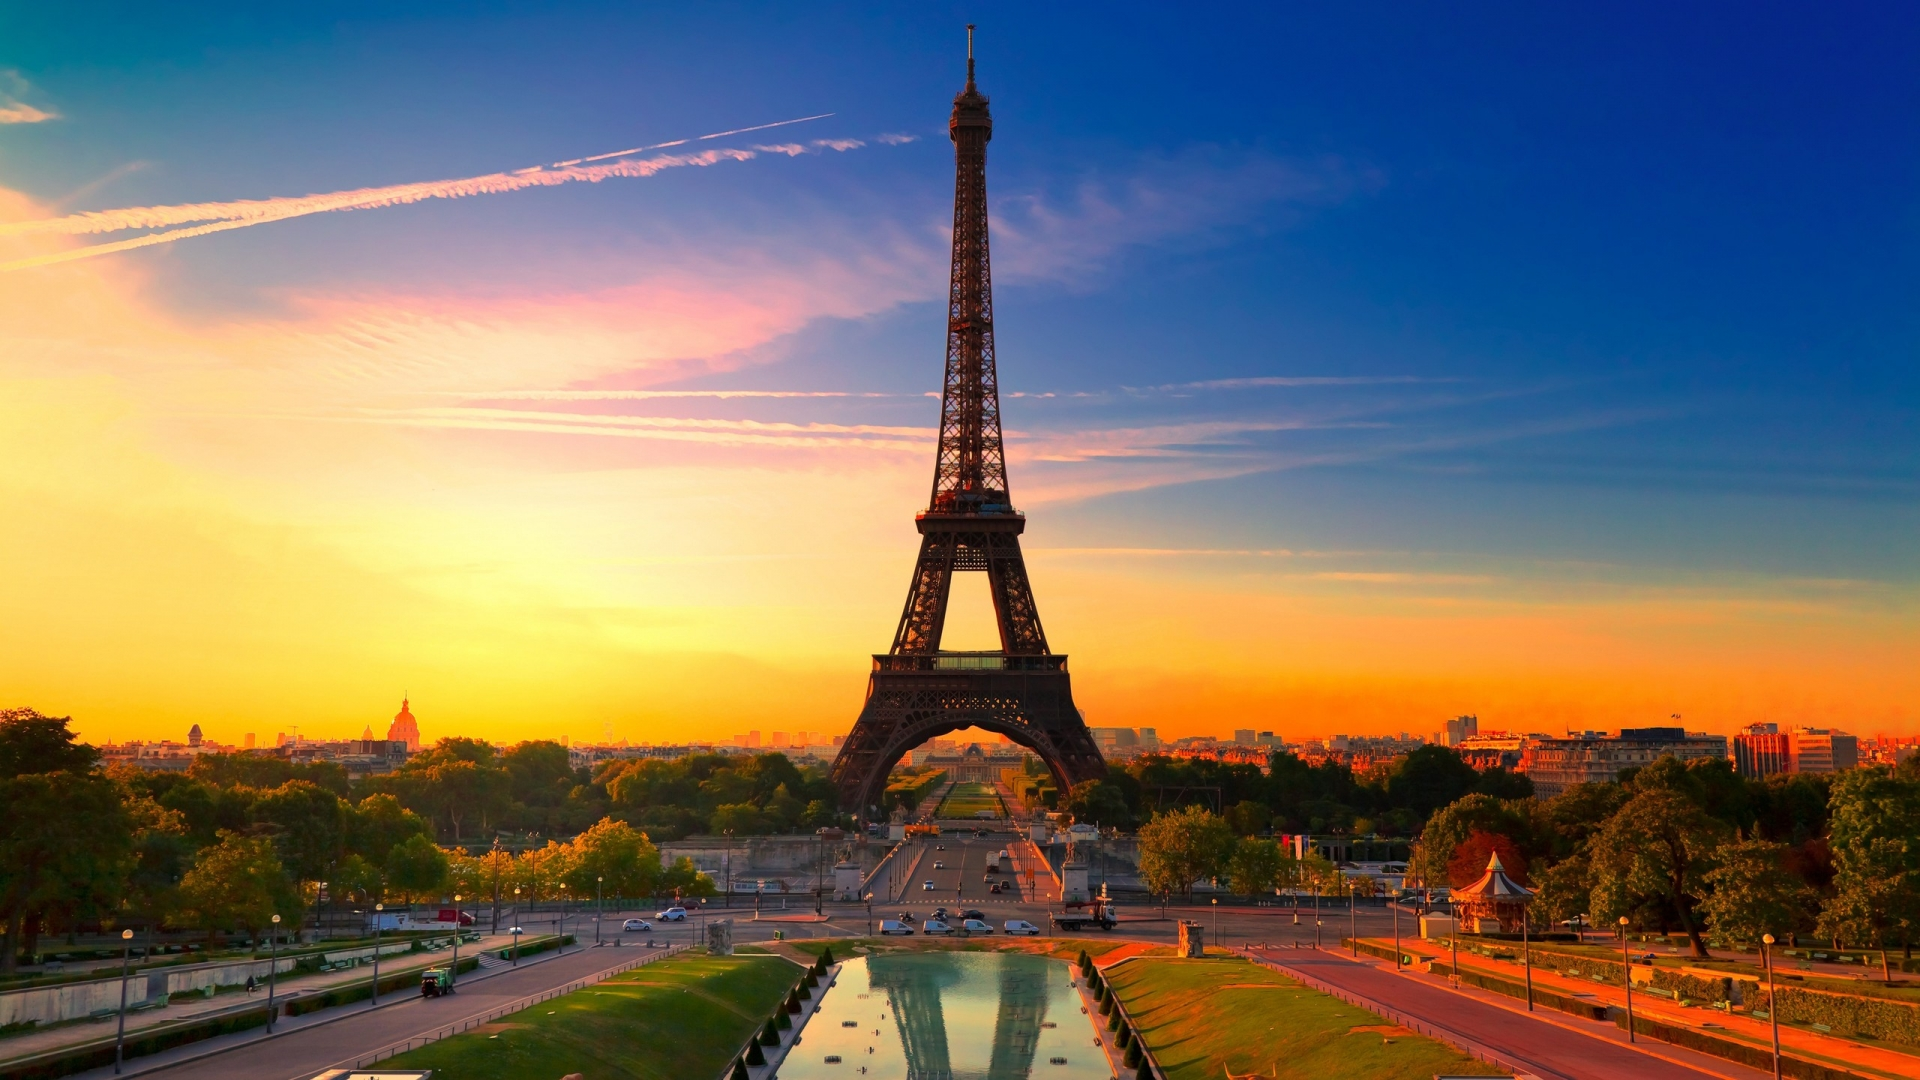 http://2.bp.blogspot.com/-iy76dLKxS8w/UGmb2kPsmdI/AAAAAAAALFY/GO4l0Ot32a0/s0/sunset-in-paris-1920x1080-wallpaper.jpg